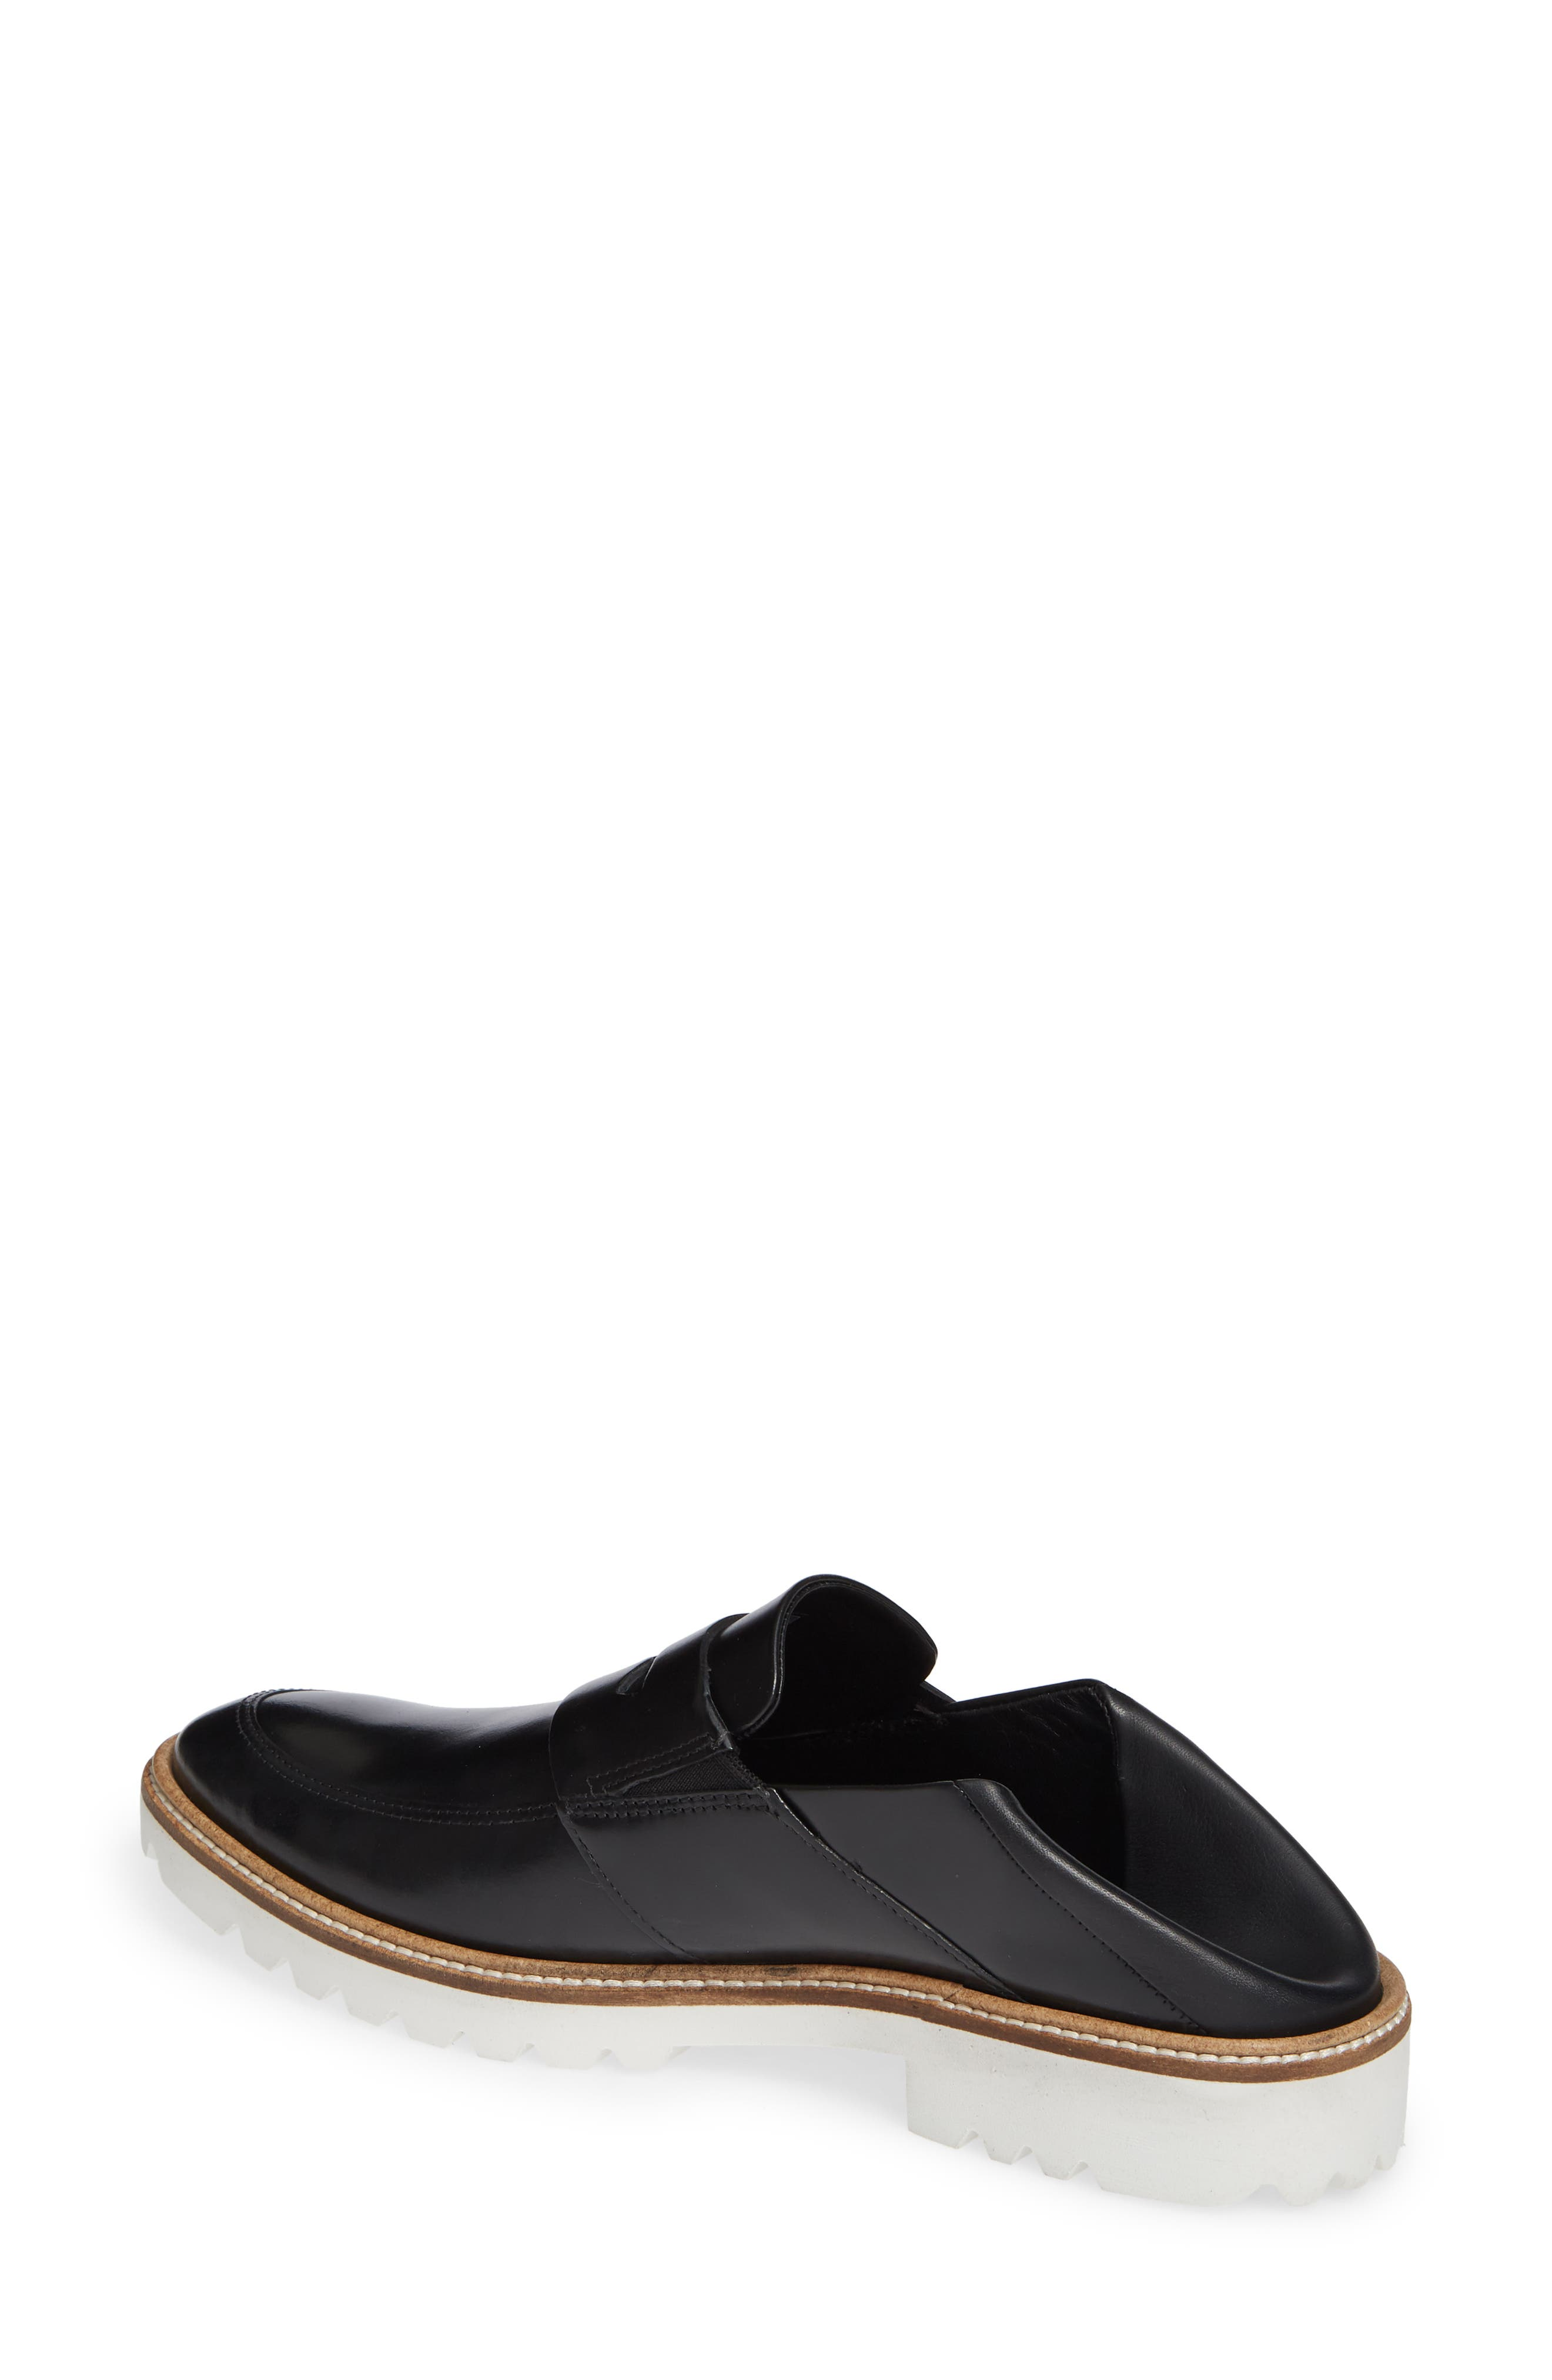 Incise Tailored Convertible Loafer,                             Alternate thumbnail 3, color,                             BLACK LEATHER